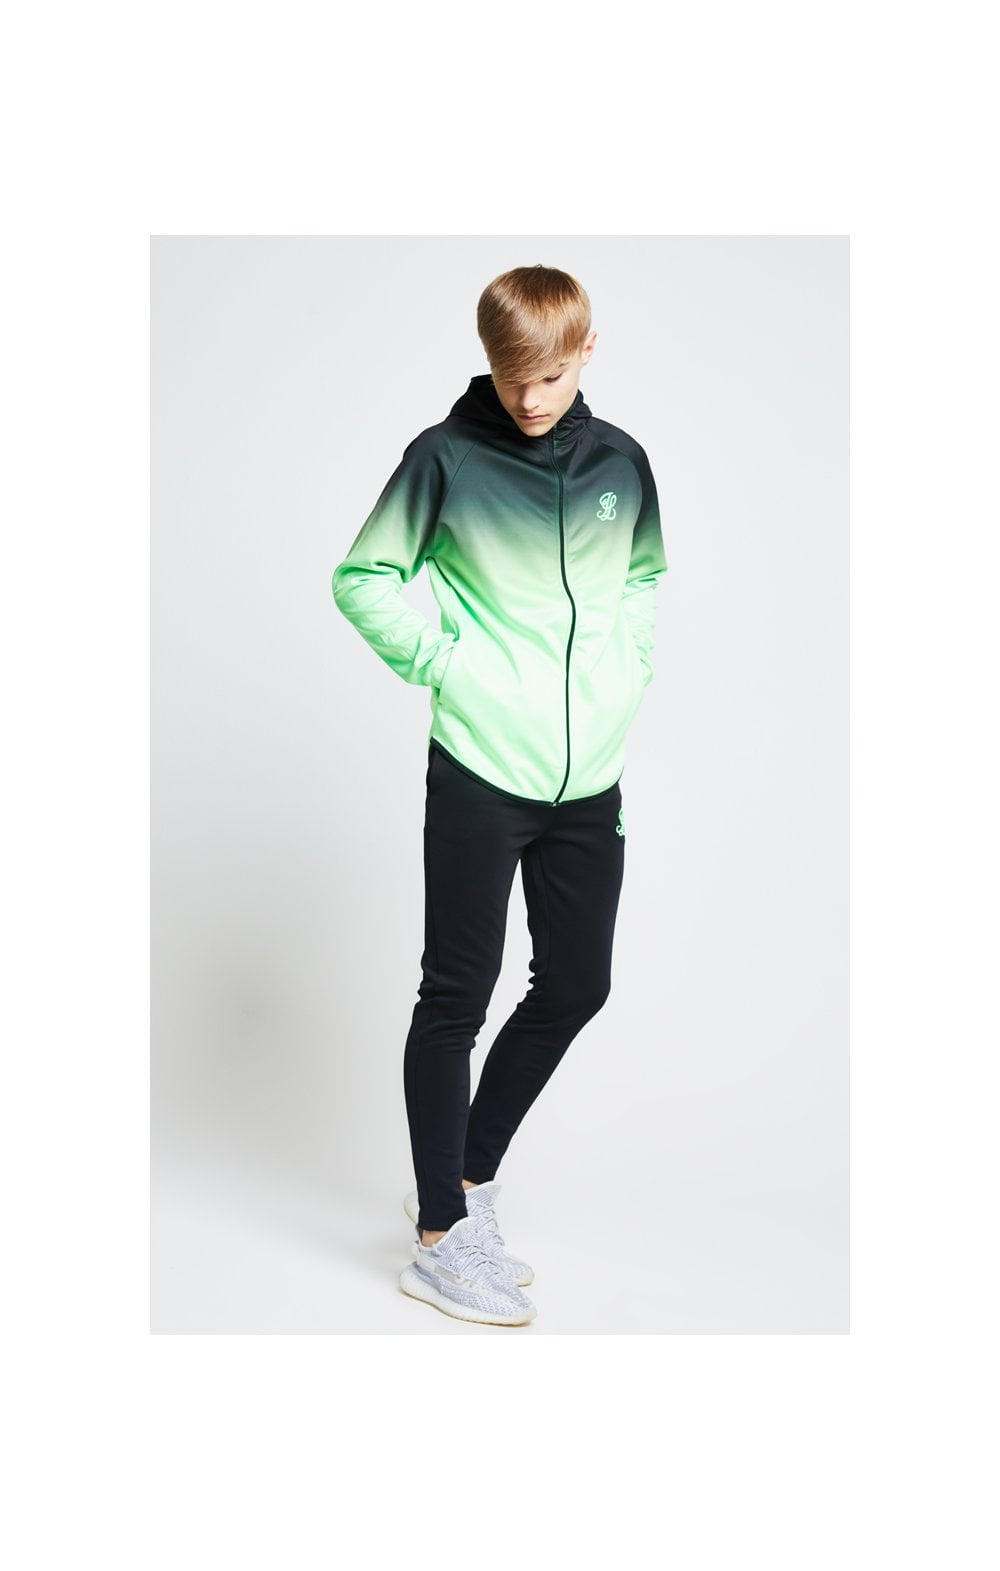 Illusive London Athlete Zip Through Hoodie - Black & Neon Green (3)